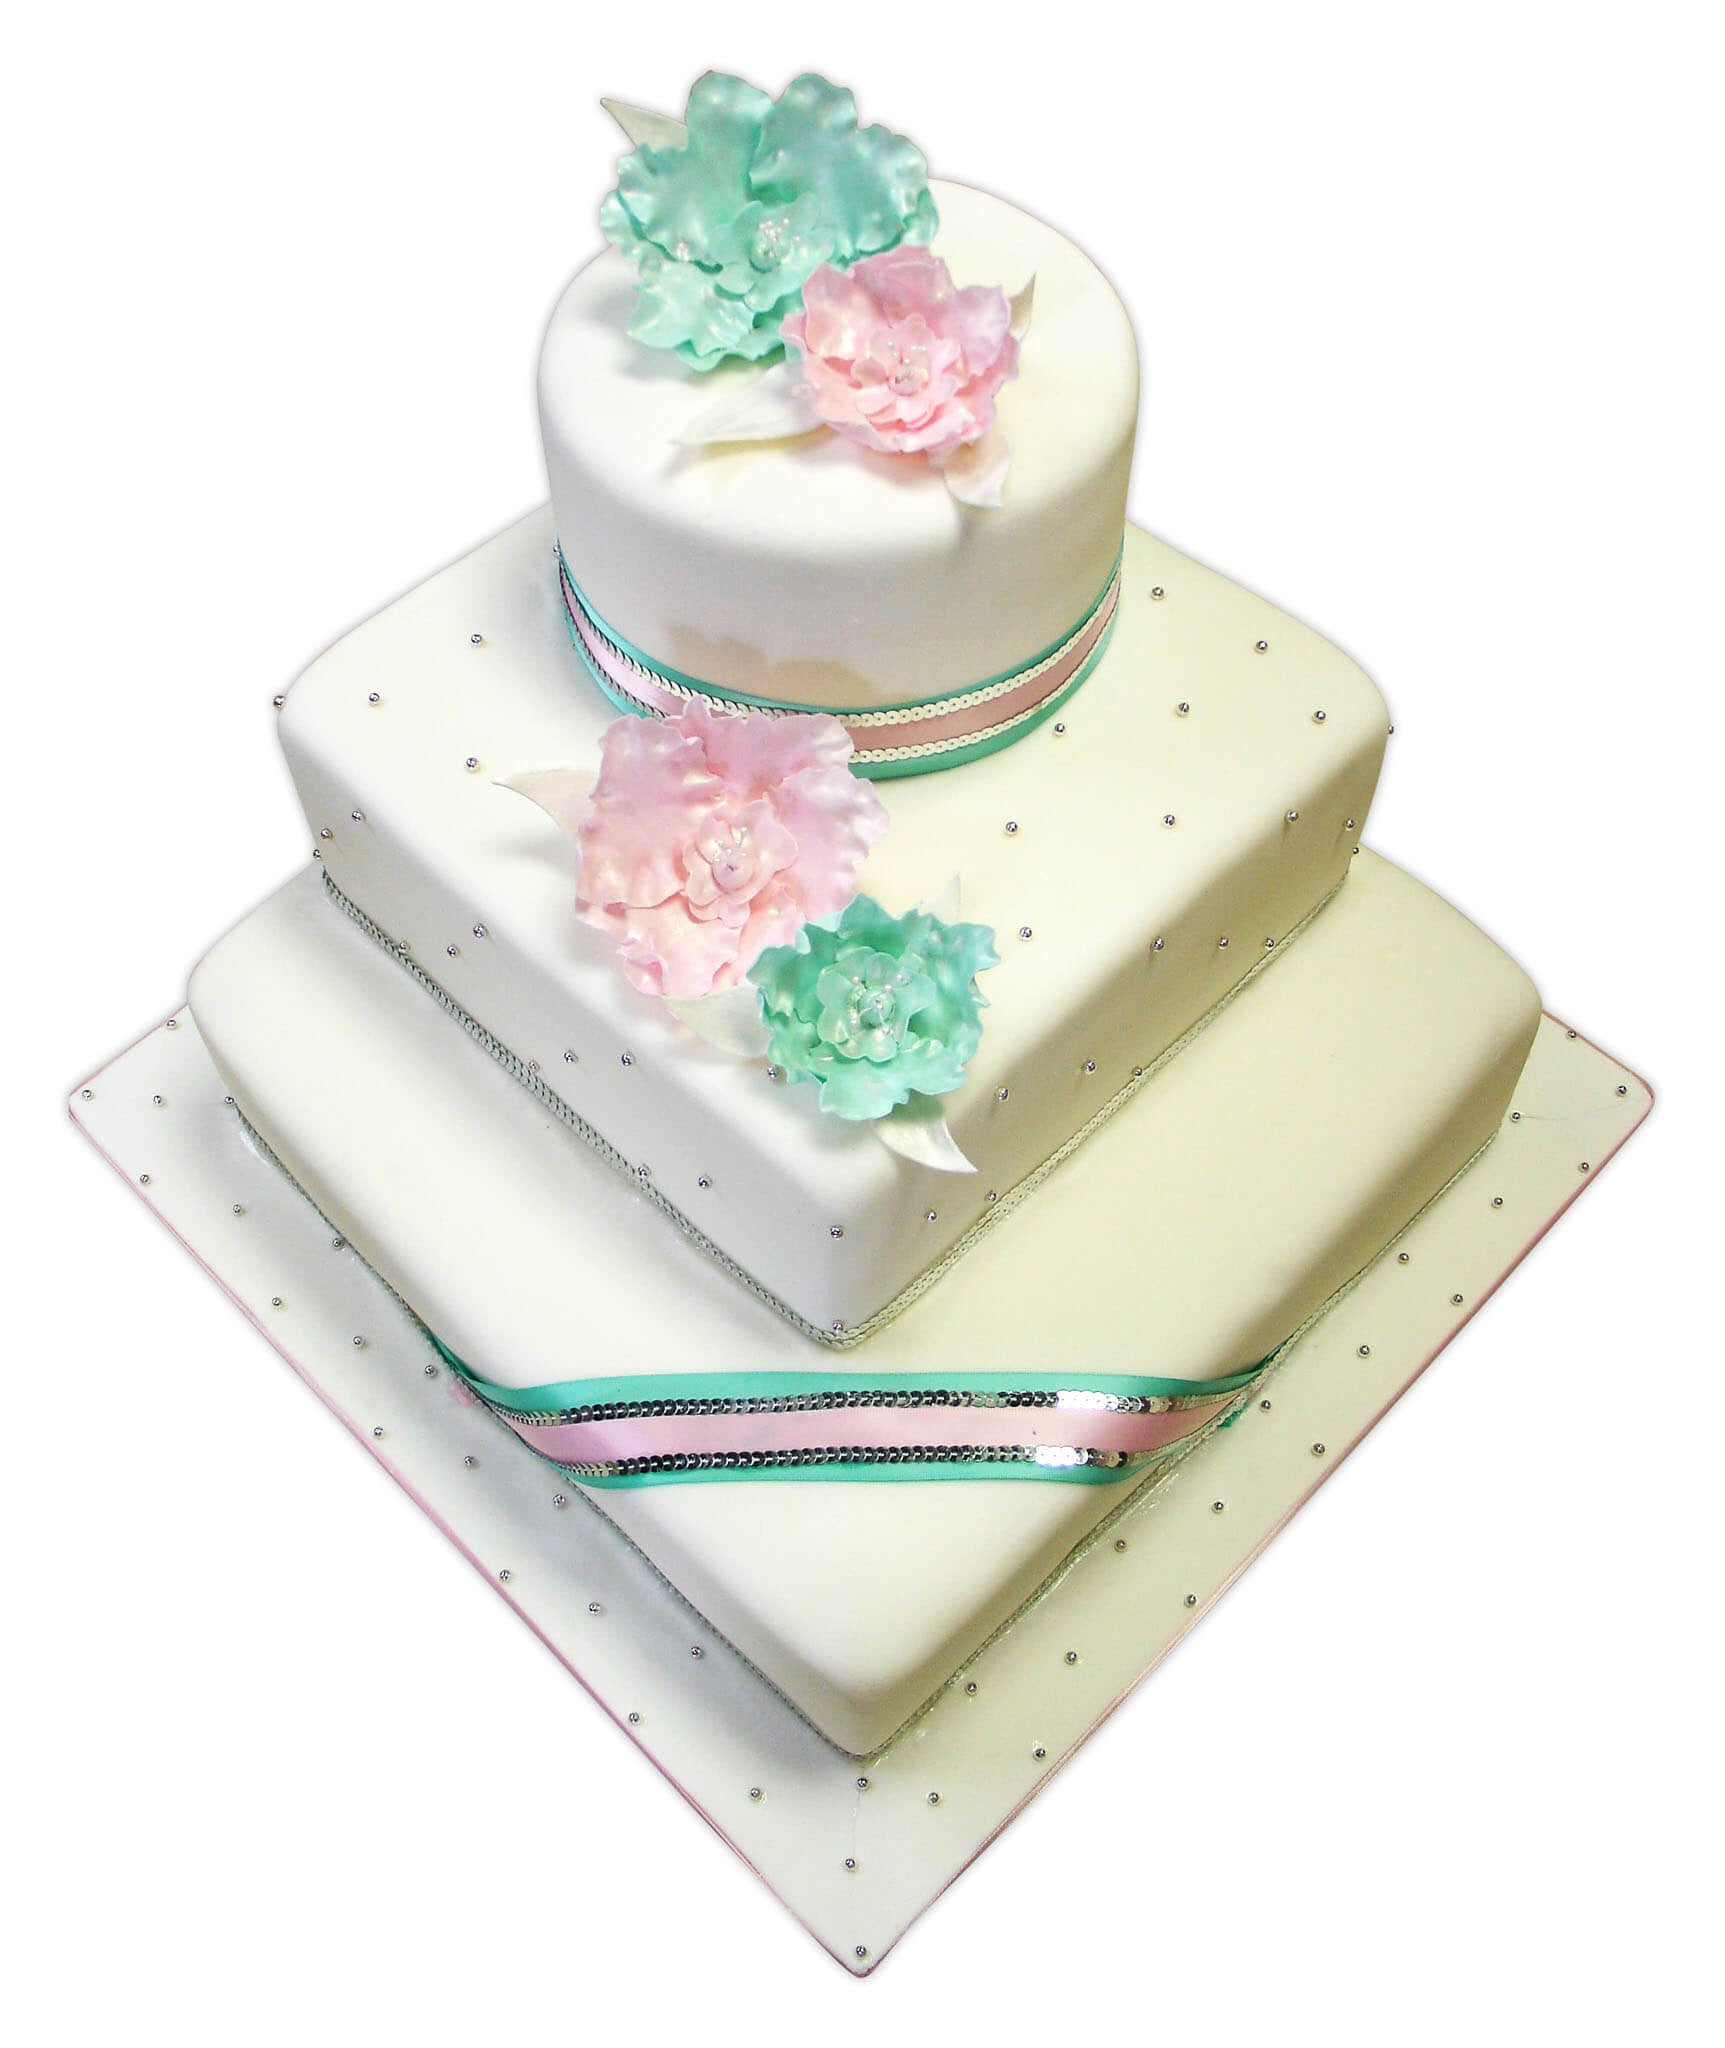 Wedding Cakes Page 2 - Rashmi\'s Bakery